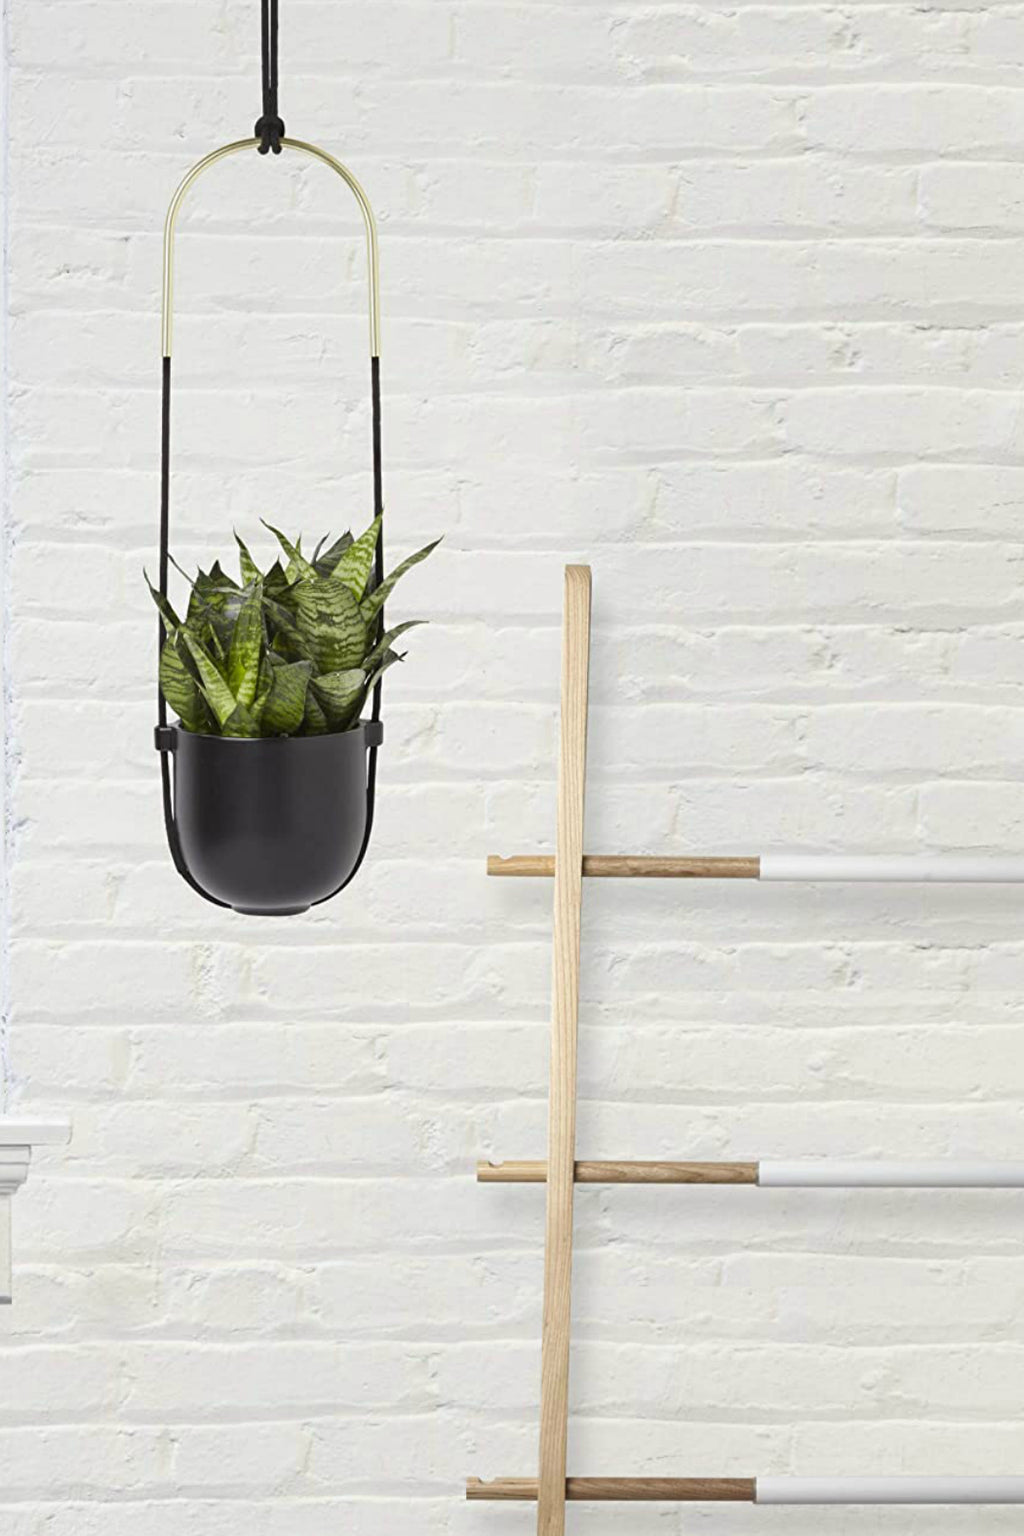 Umbra Bolo Hanging Planter, Black and Brass